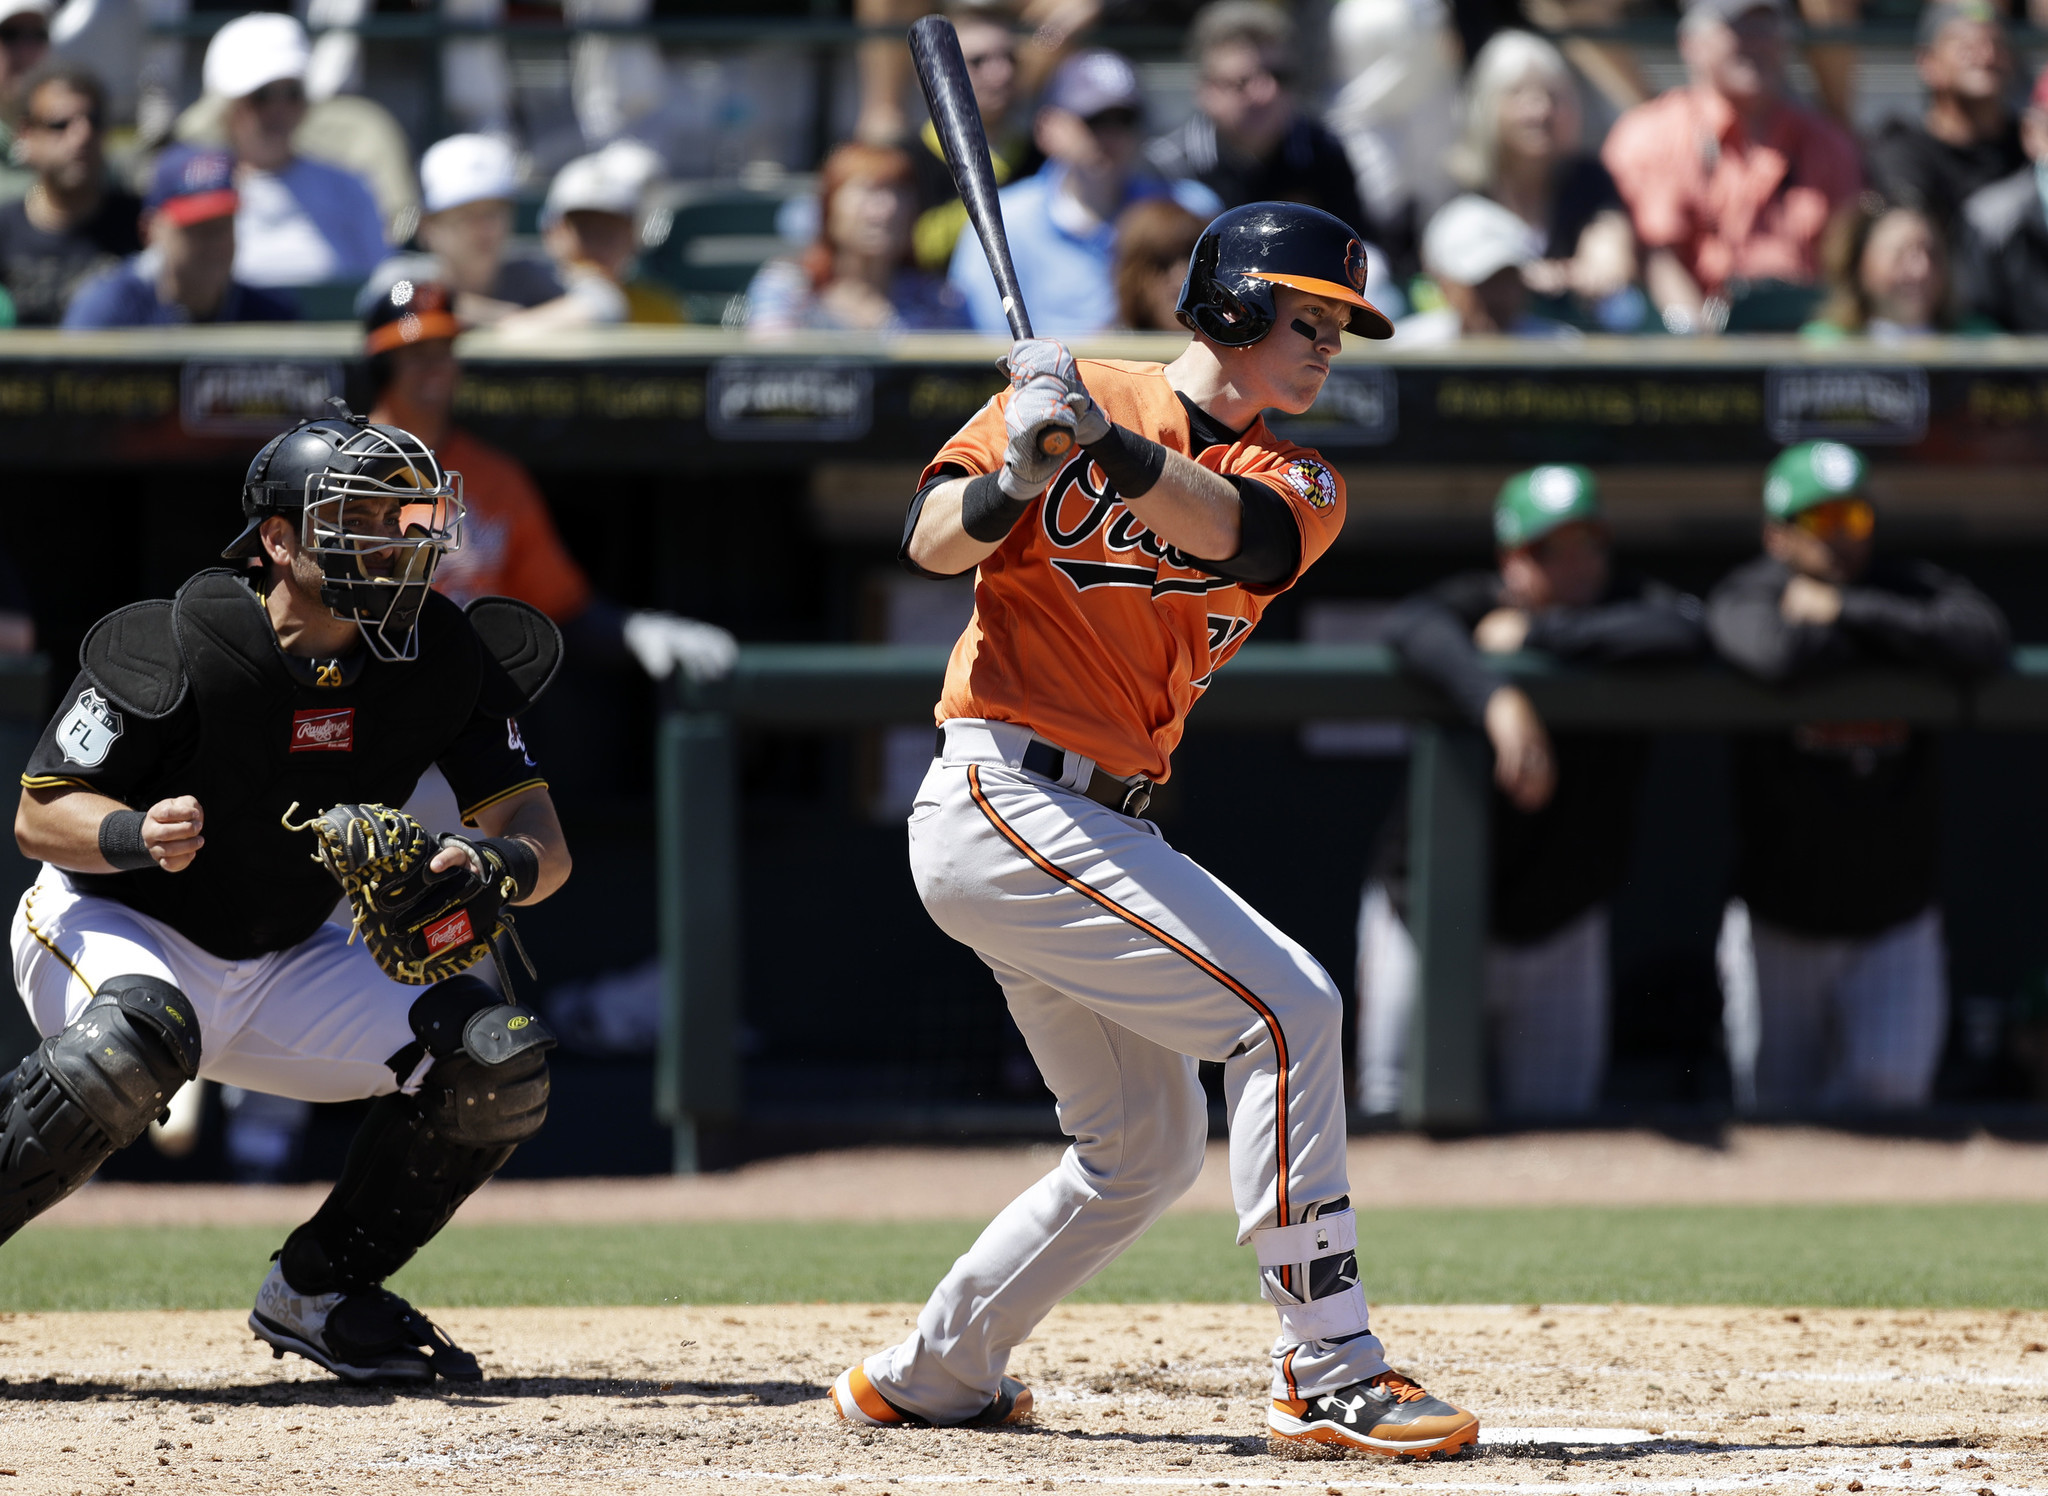 Bal-keeping-chance-sisco-in-camp-a-sign-orioles-believe-top-prospect-is-close-20170322